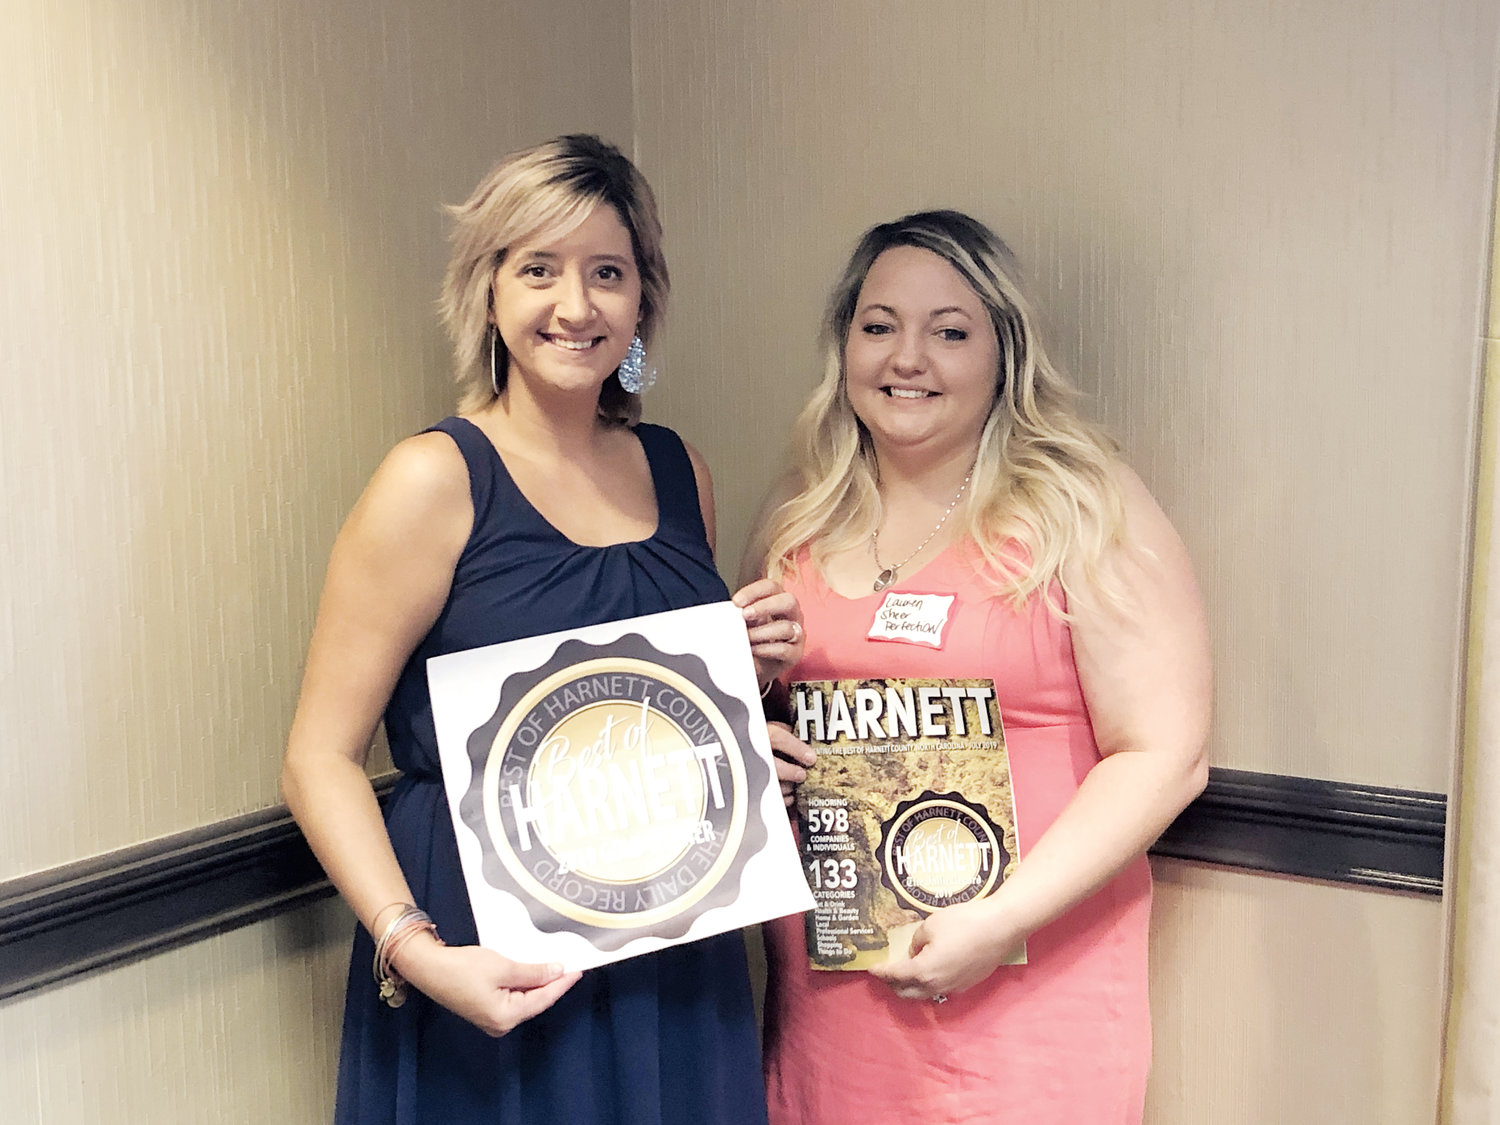 Sheer Perfection owner and stylist Crystal Jones, left, stands with hair stylist Lauren LaFromboise with the Best of Harnett award the salon won.